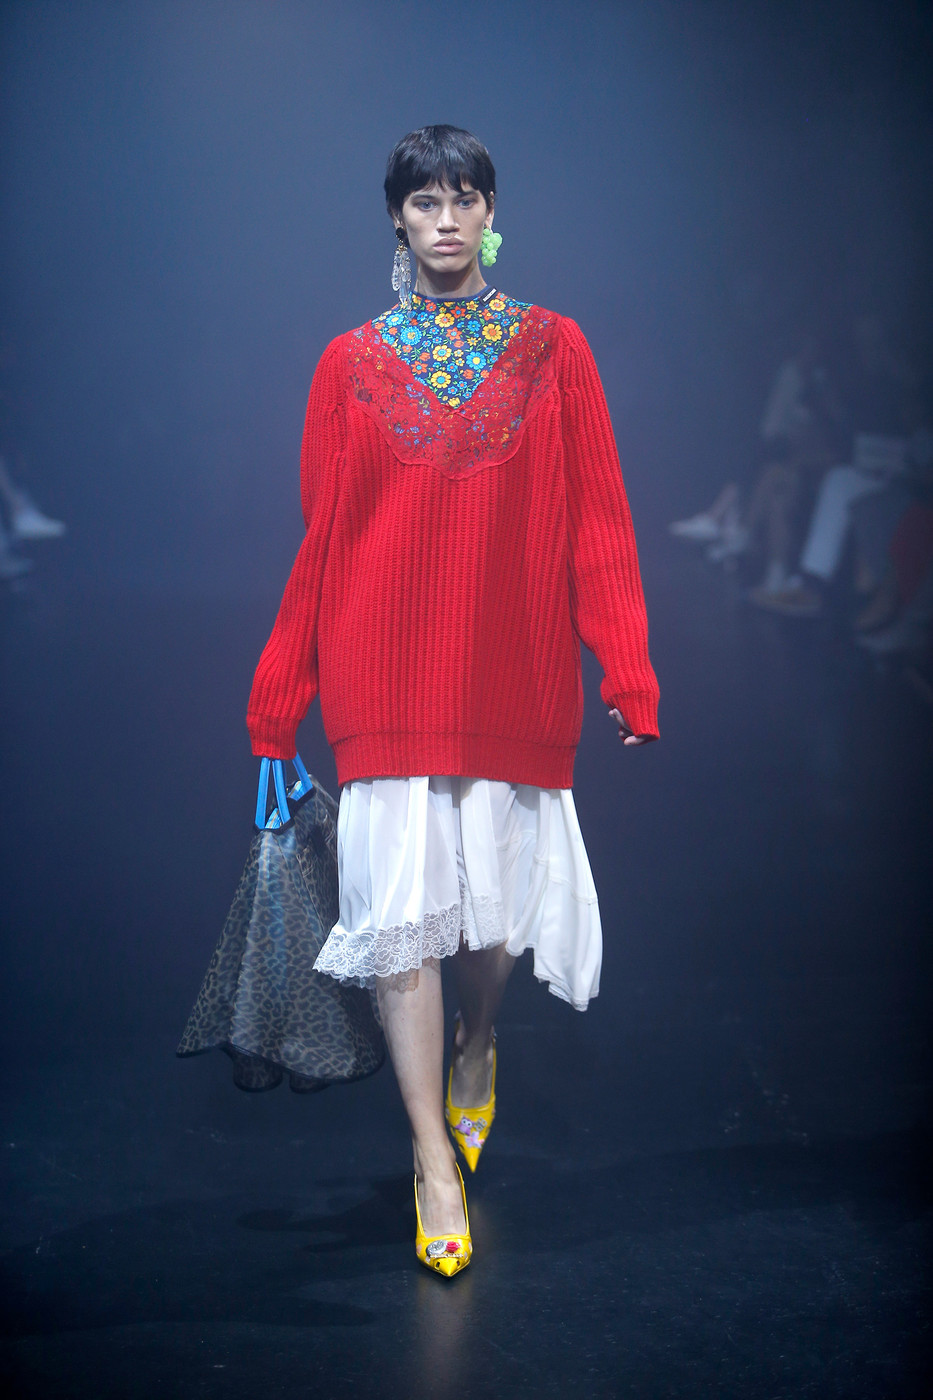 Fashion in Japan - Latest Fashion Trends from Tokyo Global trends in fashion